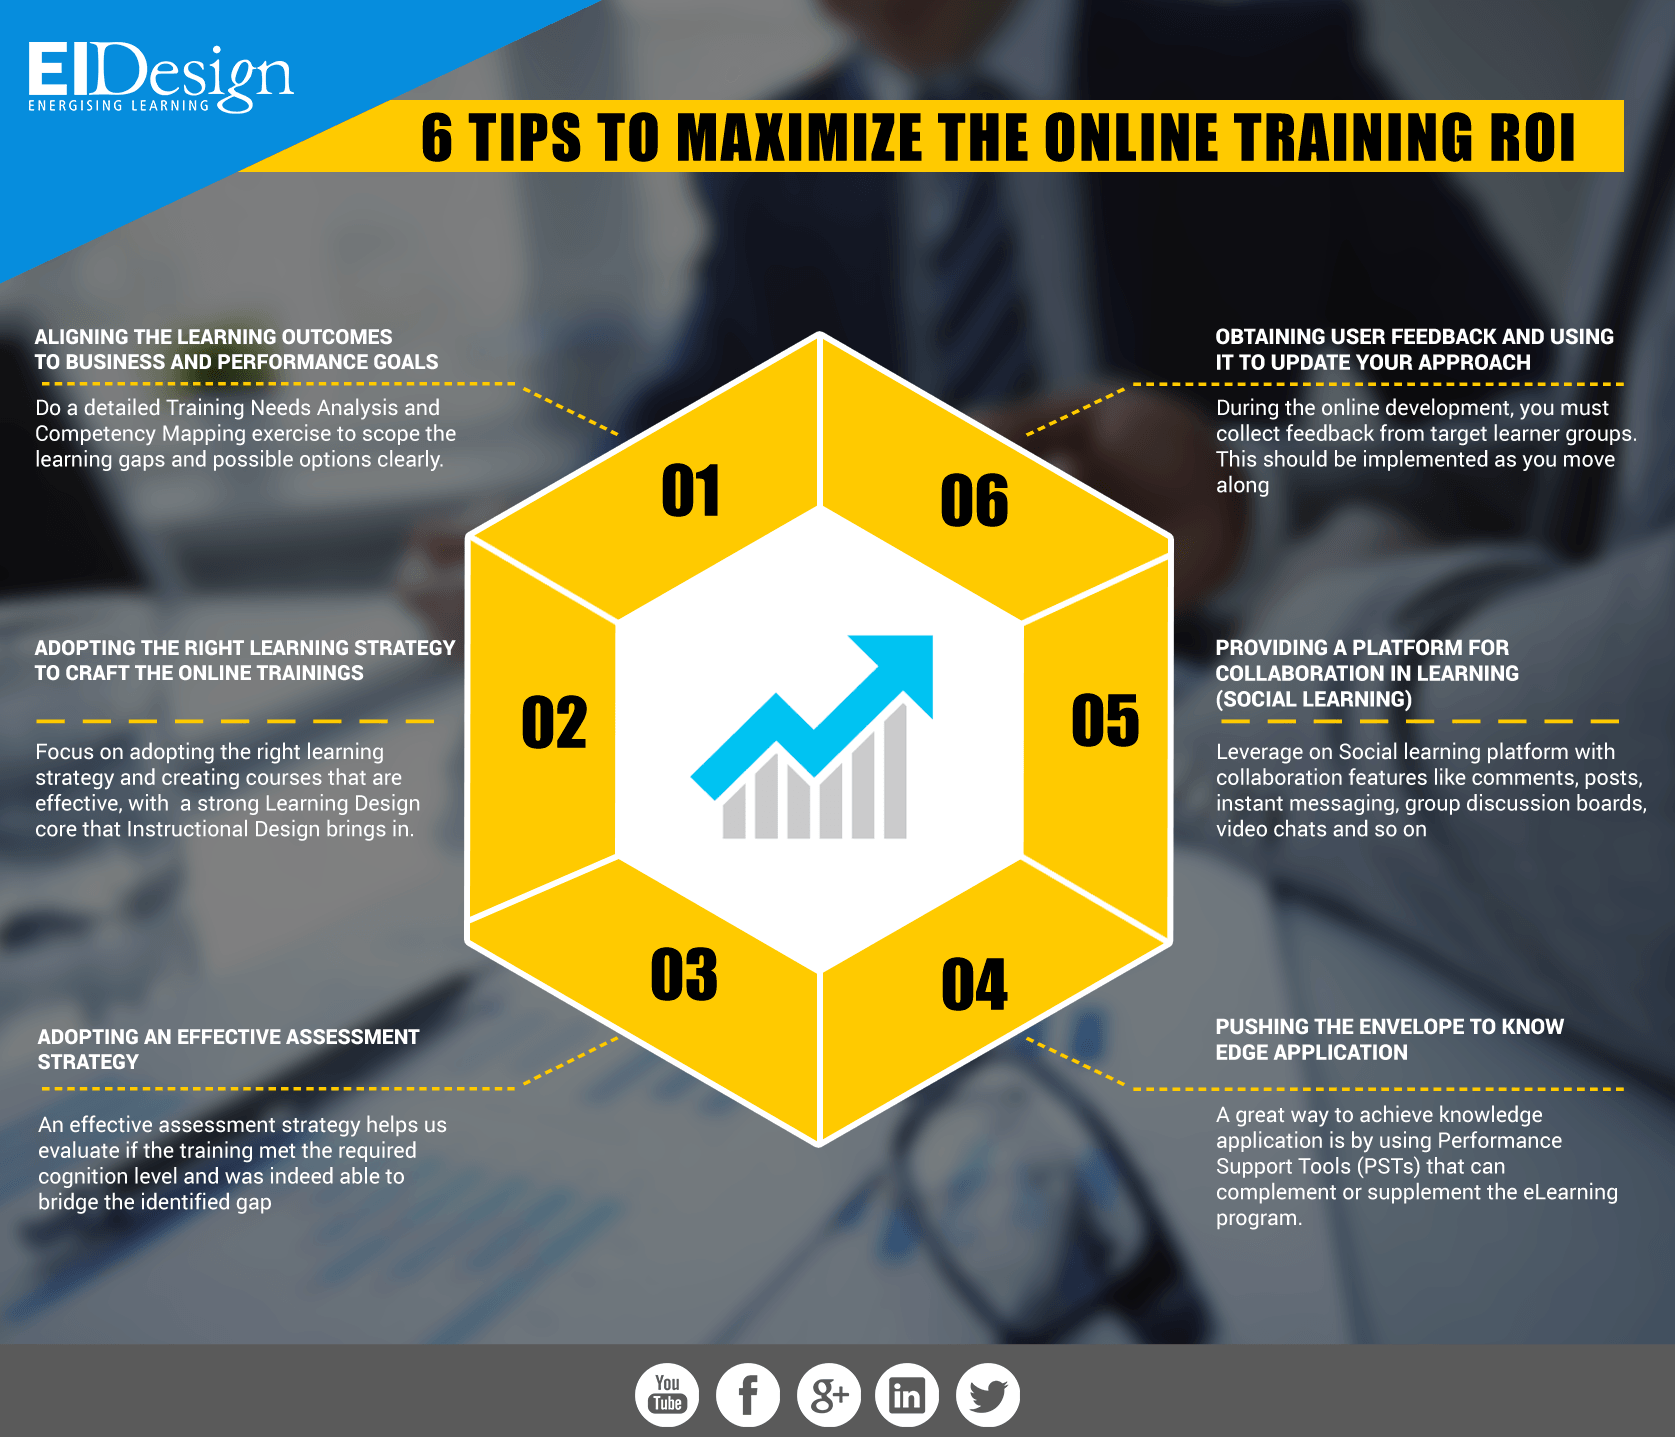 6 Tips To Maximize The Online Training ROI Infographic